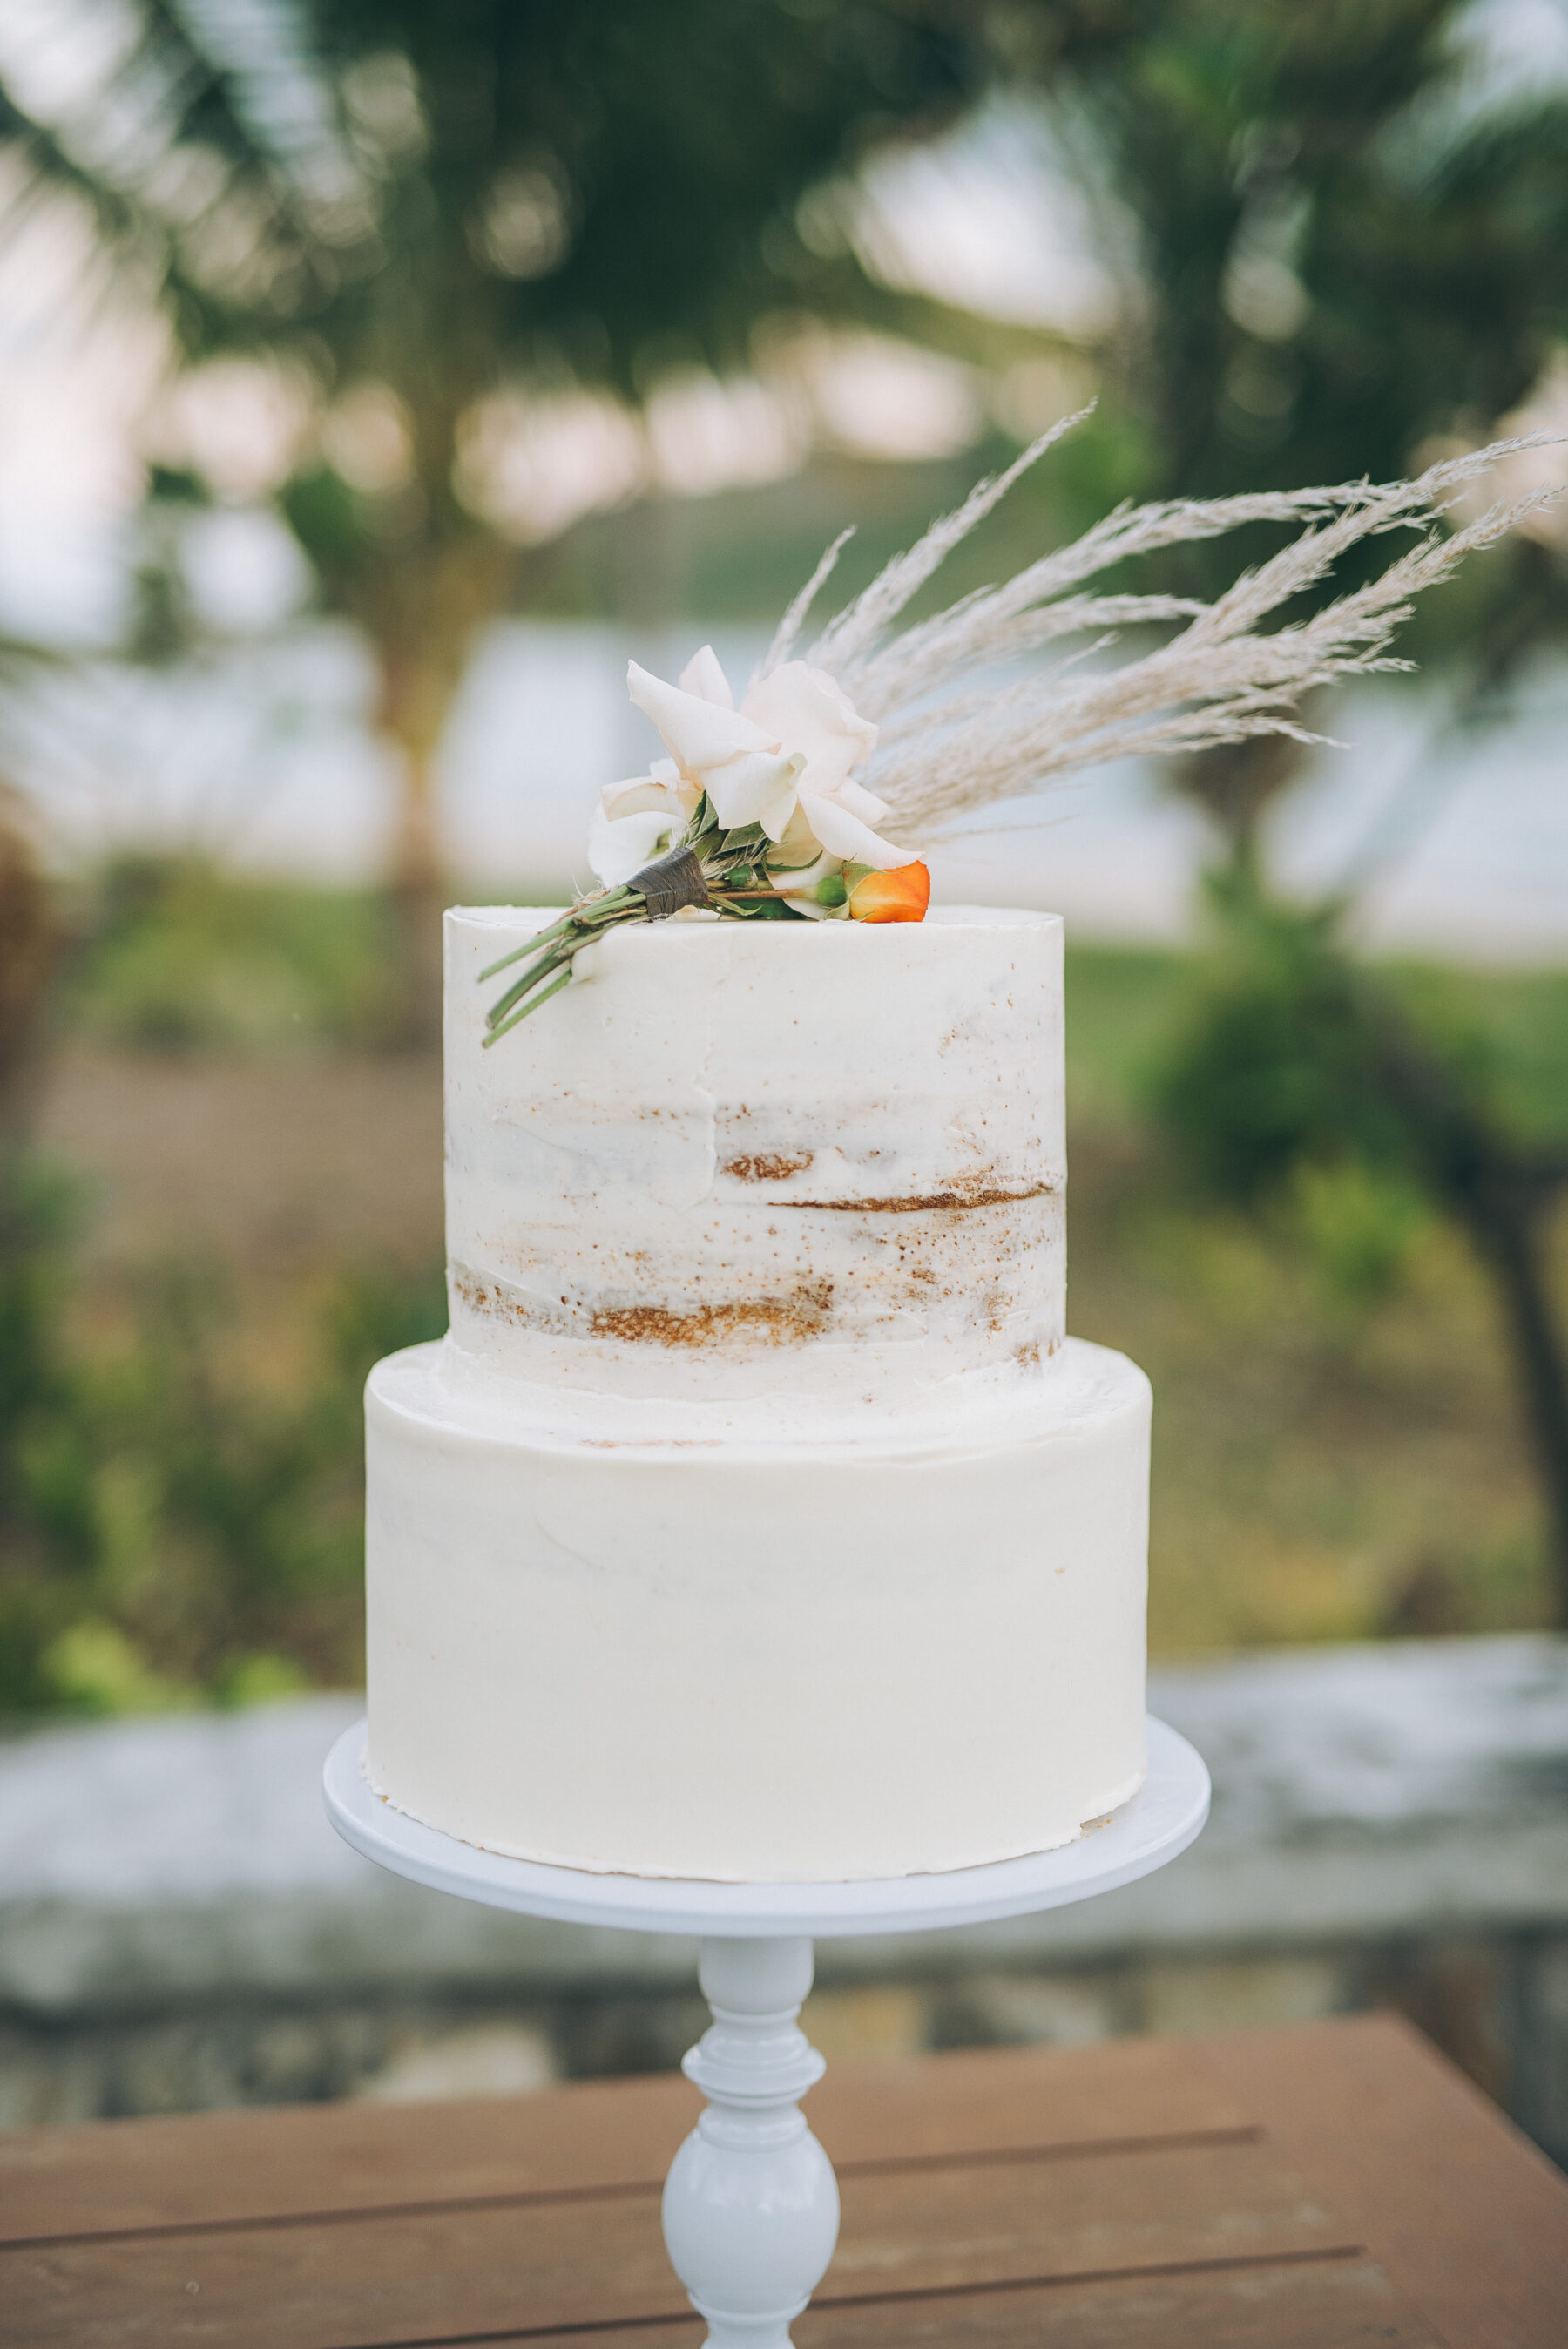 Caribbean wedding cake design: Intimate Caribbean Wedding by Details Nashville